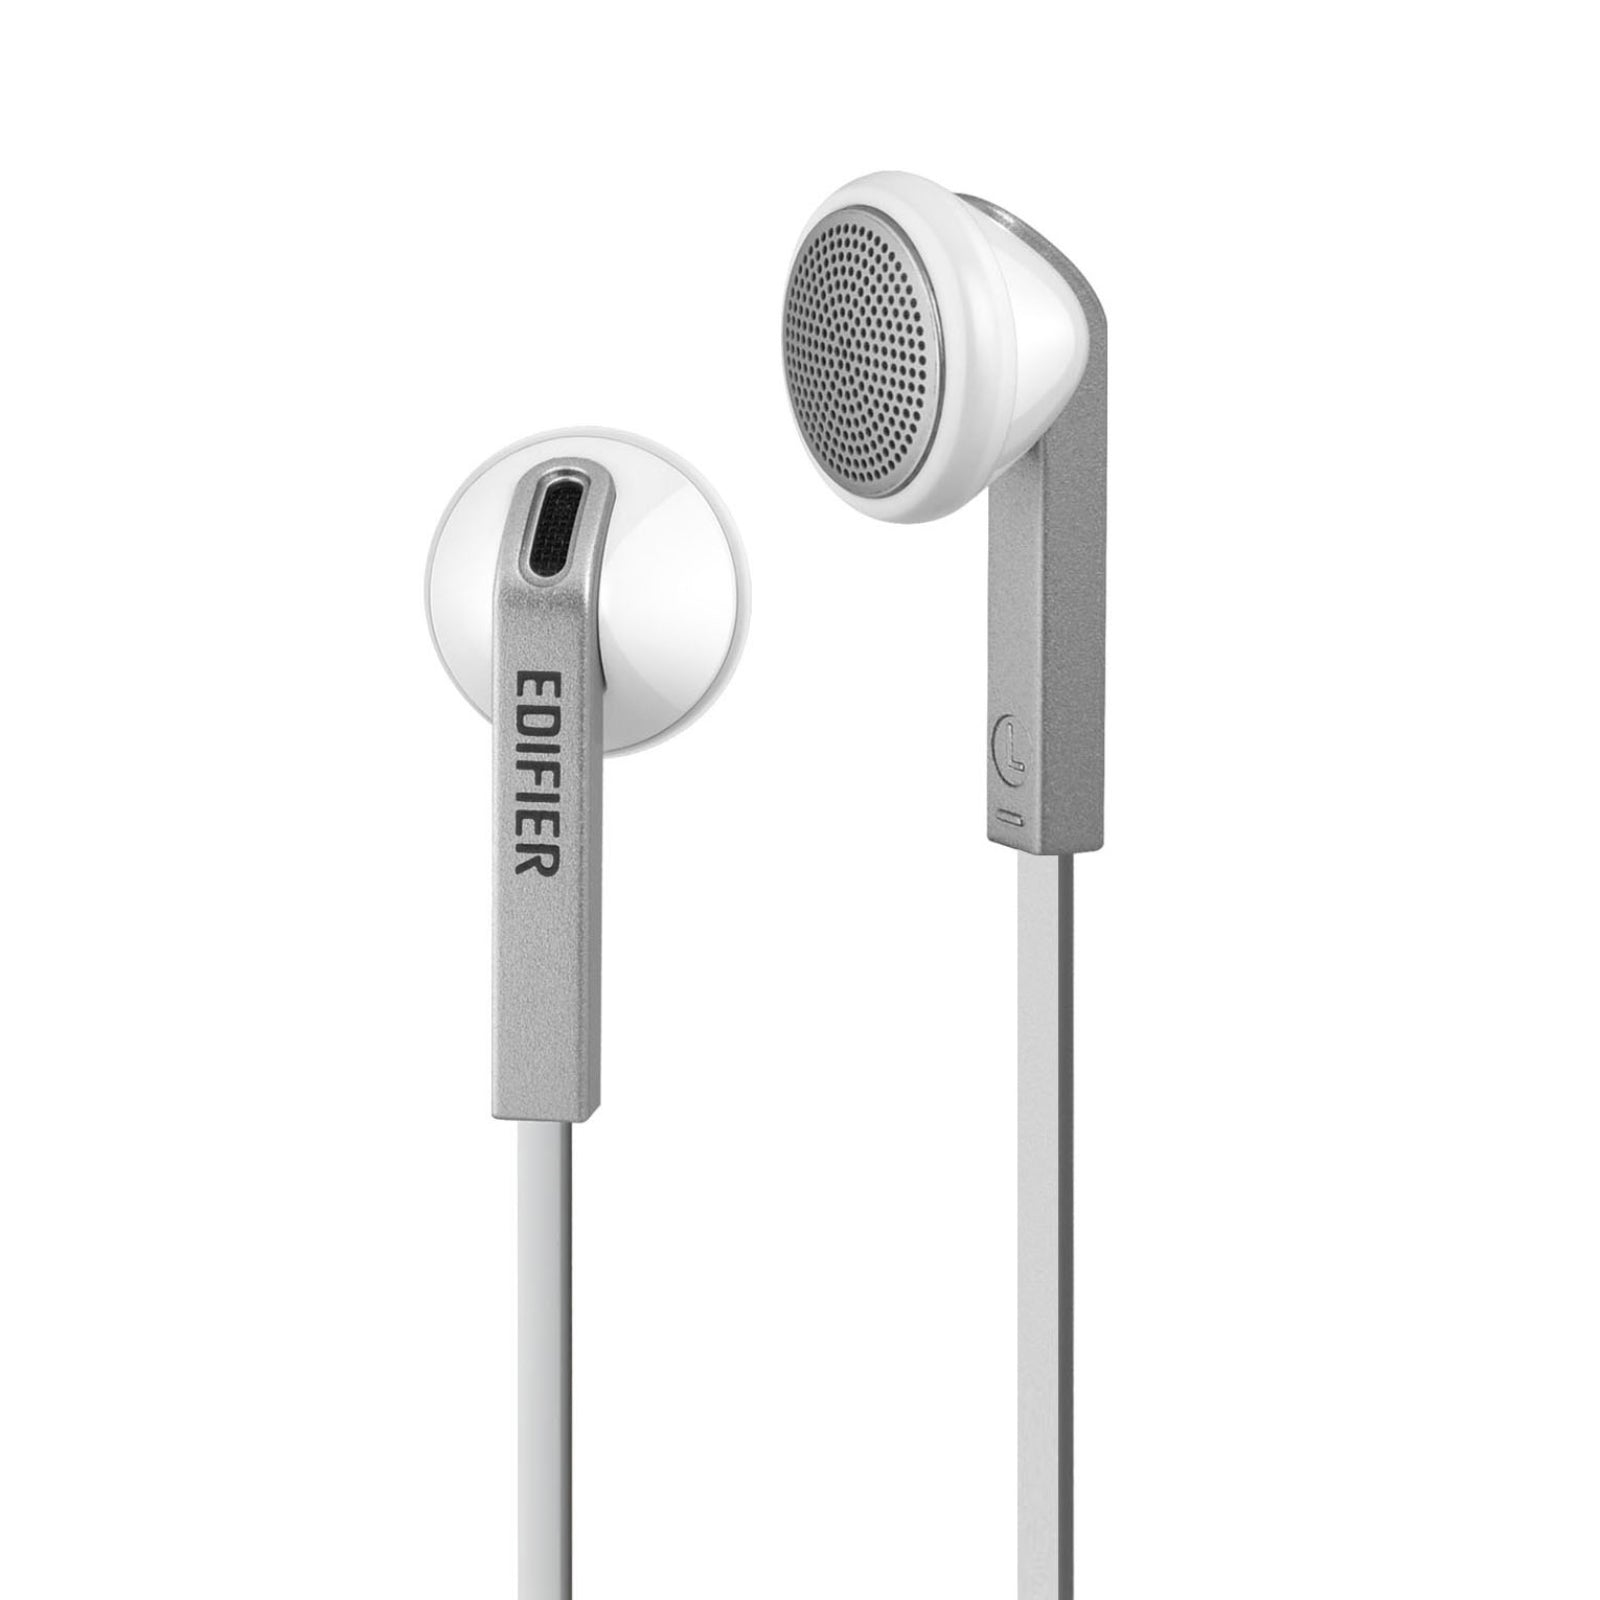 Edifier H190 Premium Earbuds - Classic Style Earbud Headphones